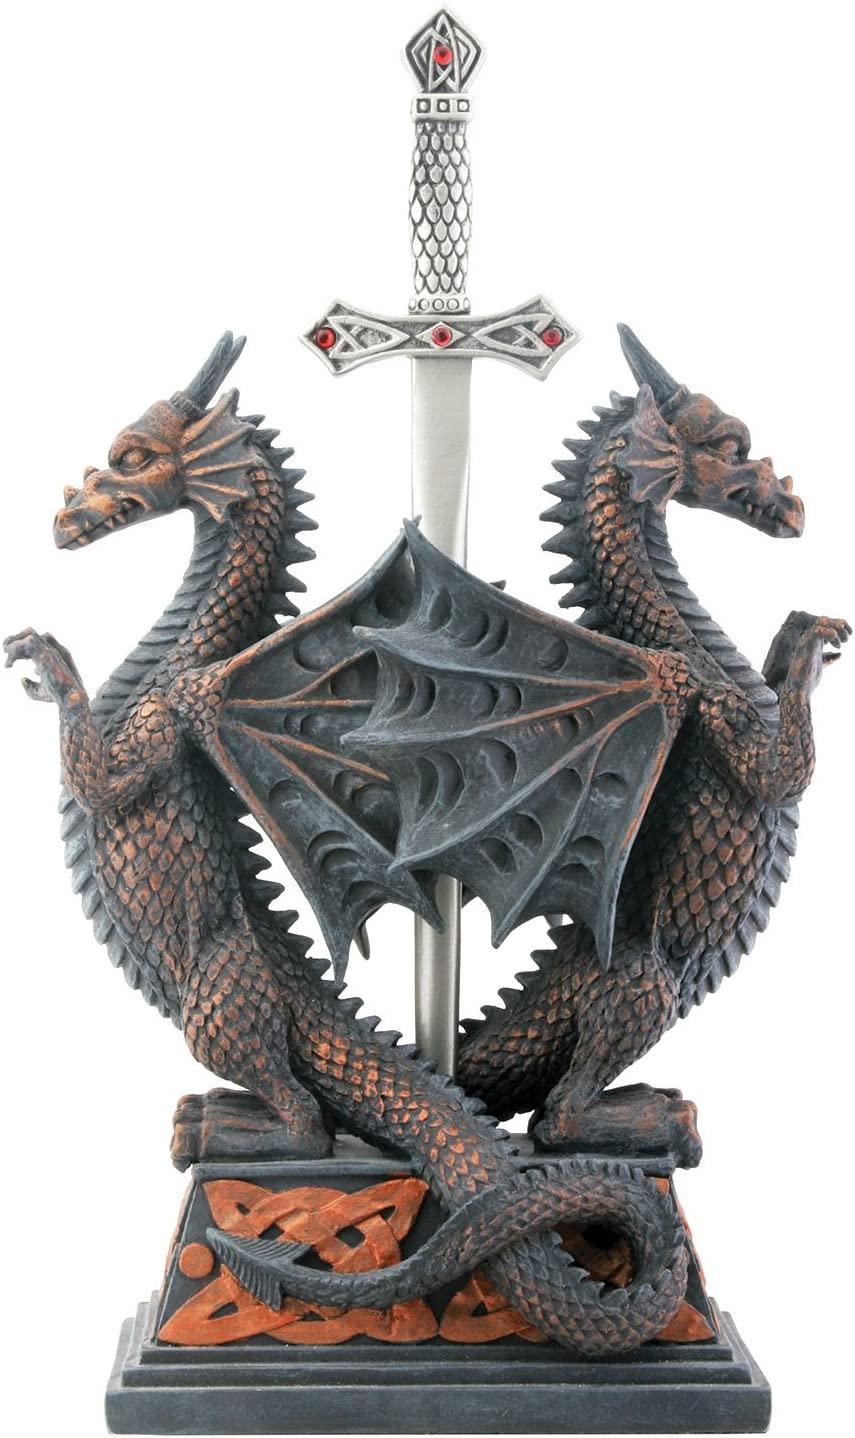 Ytc Dbl Dragon Letter Opener Collectible Figurine Office Decoration Home Kitchen